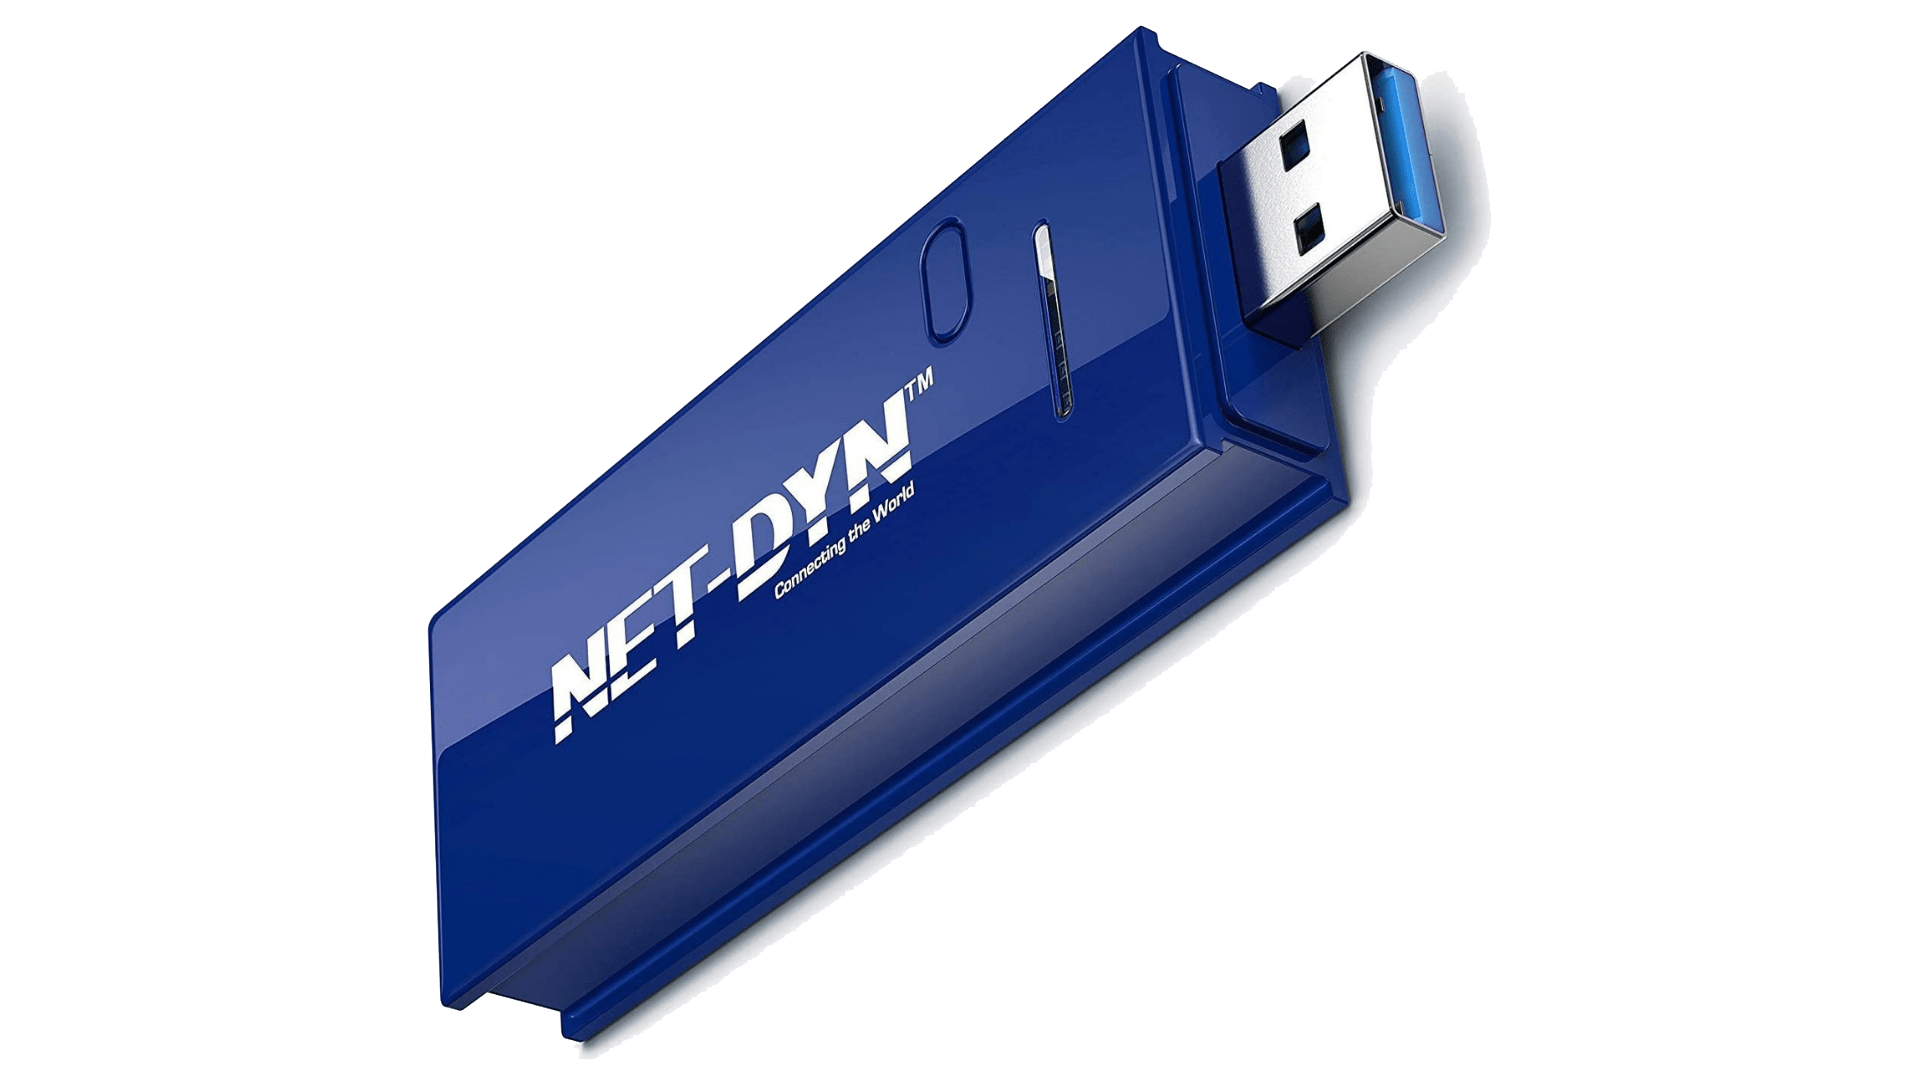 Net-Dyn AC1200 USB WiFi Adapter